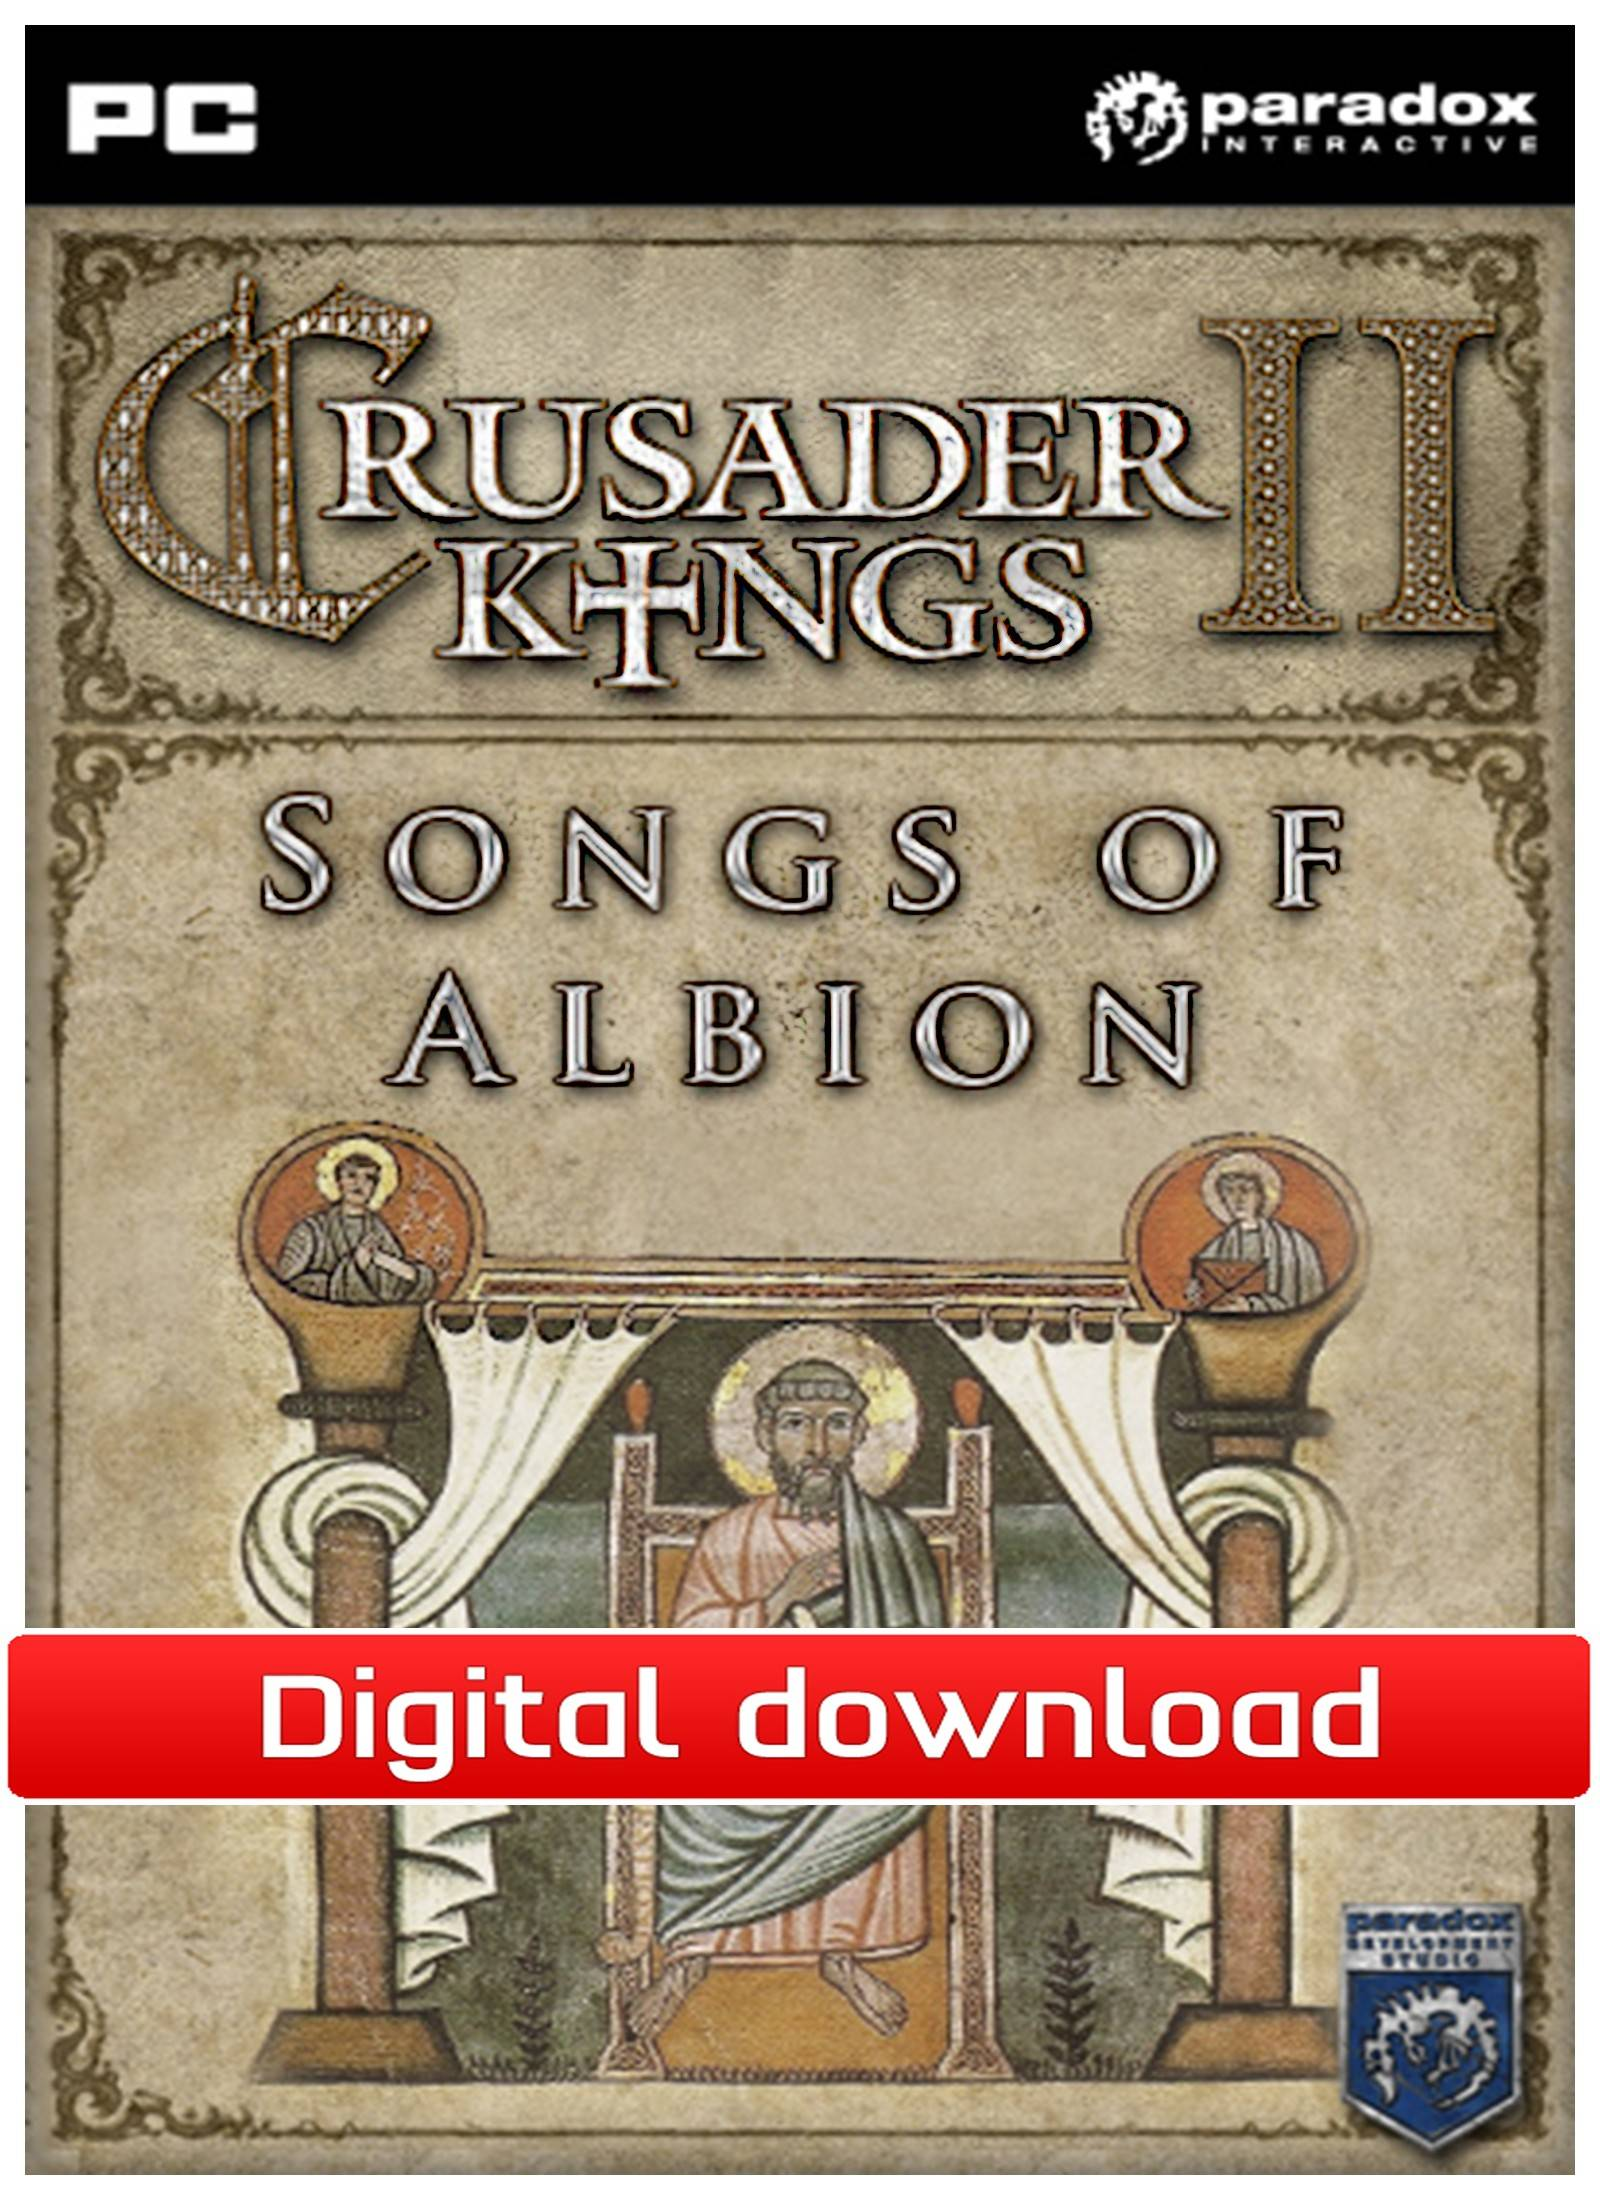 Paradox Crusader Kings 2: DLC Songs of Albion (Download)